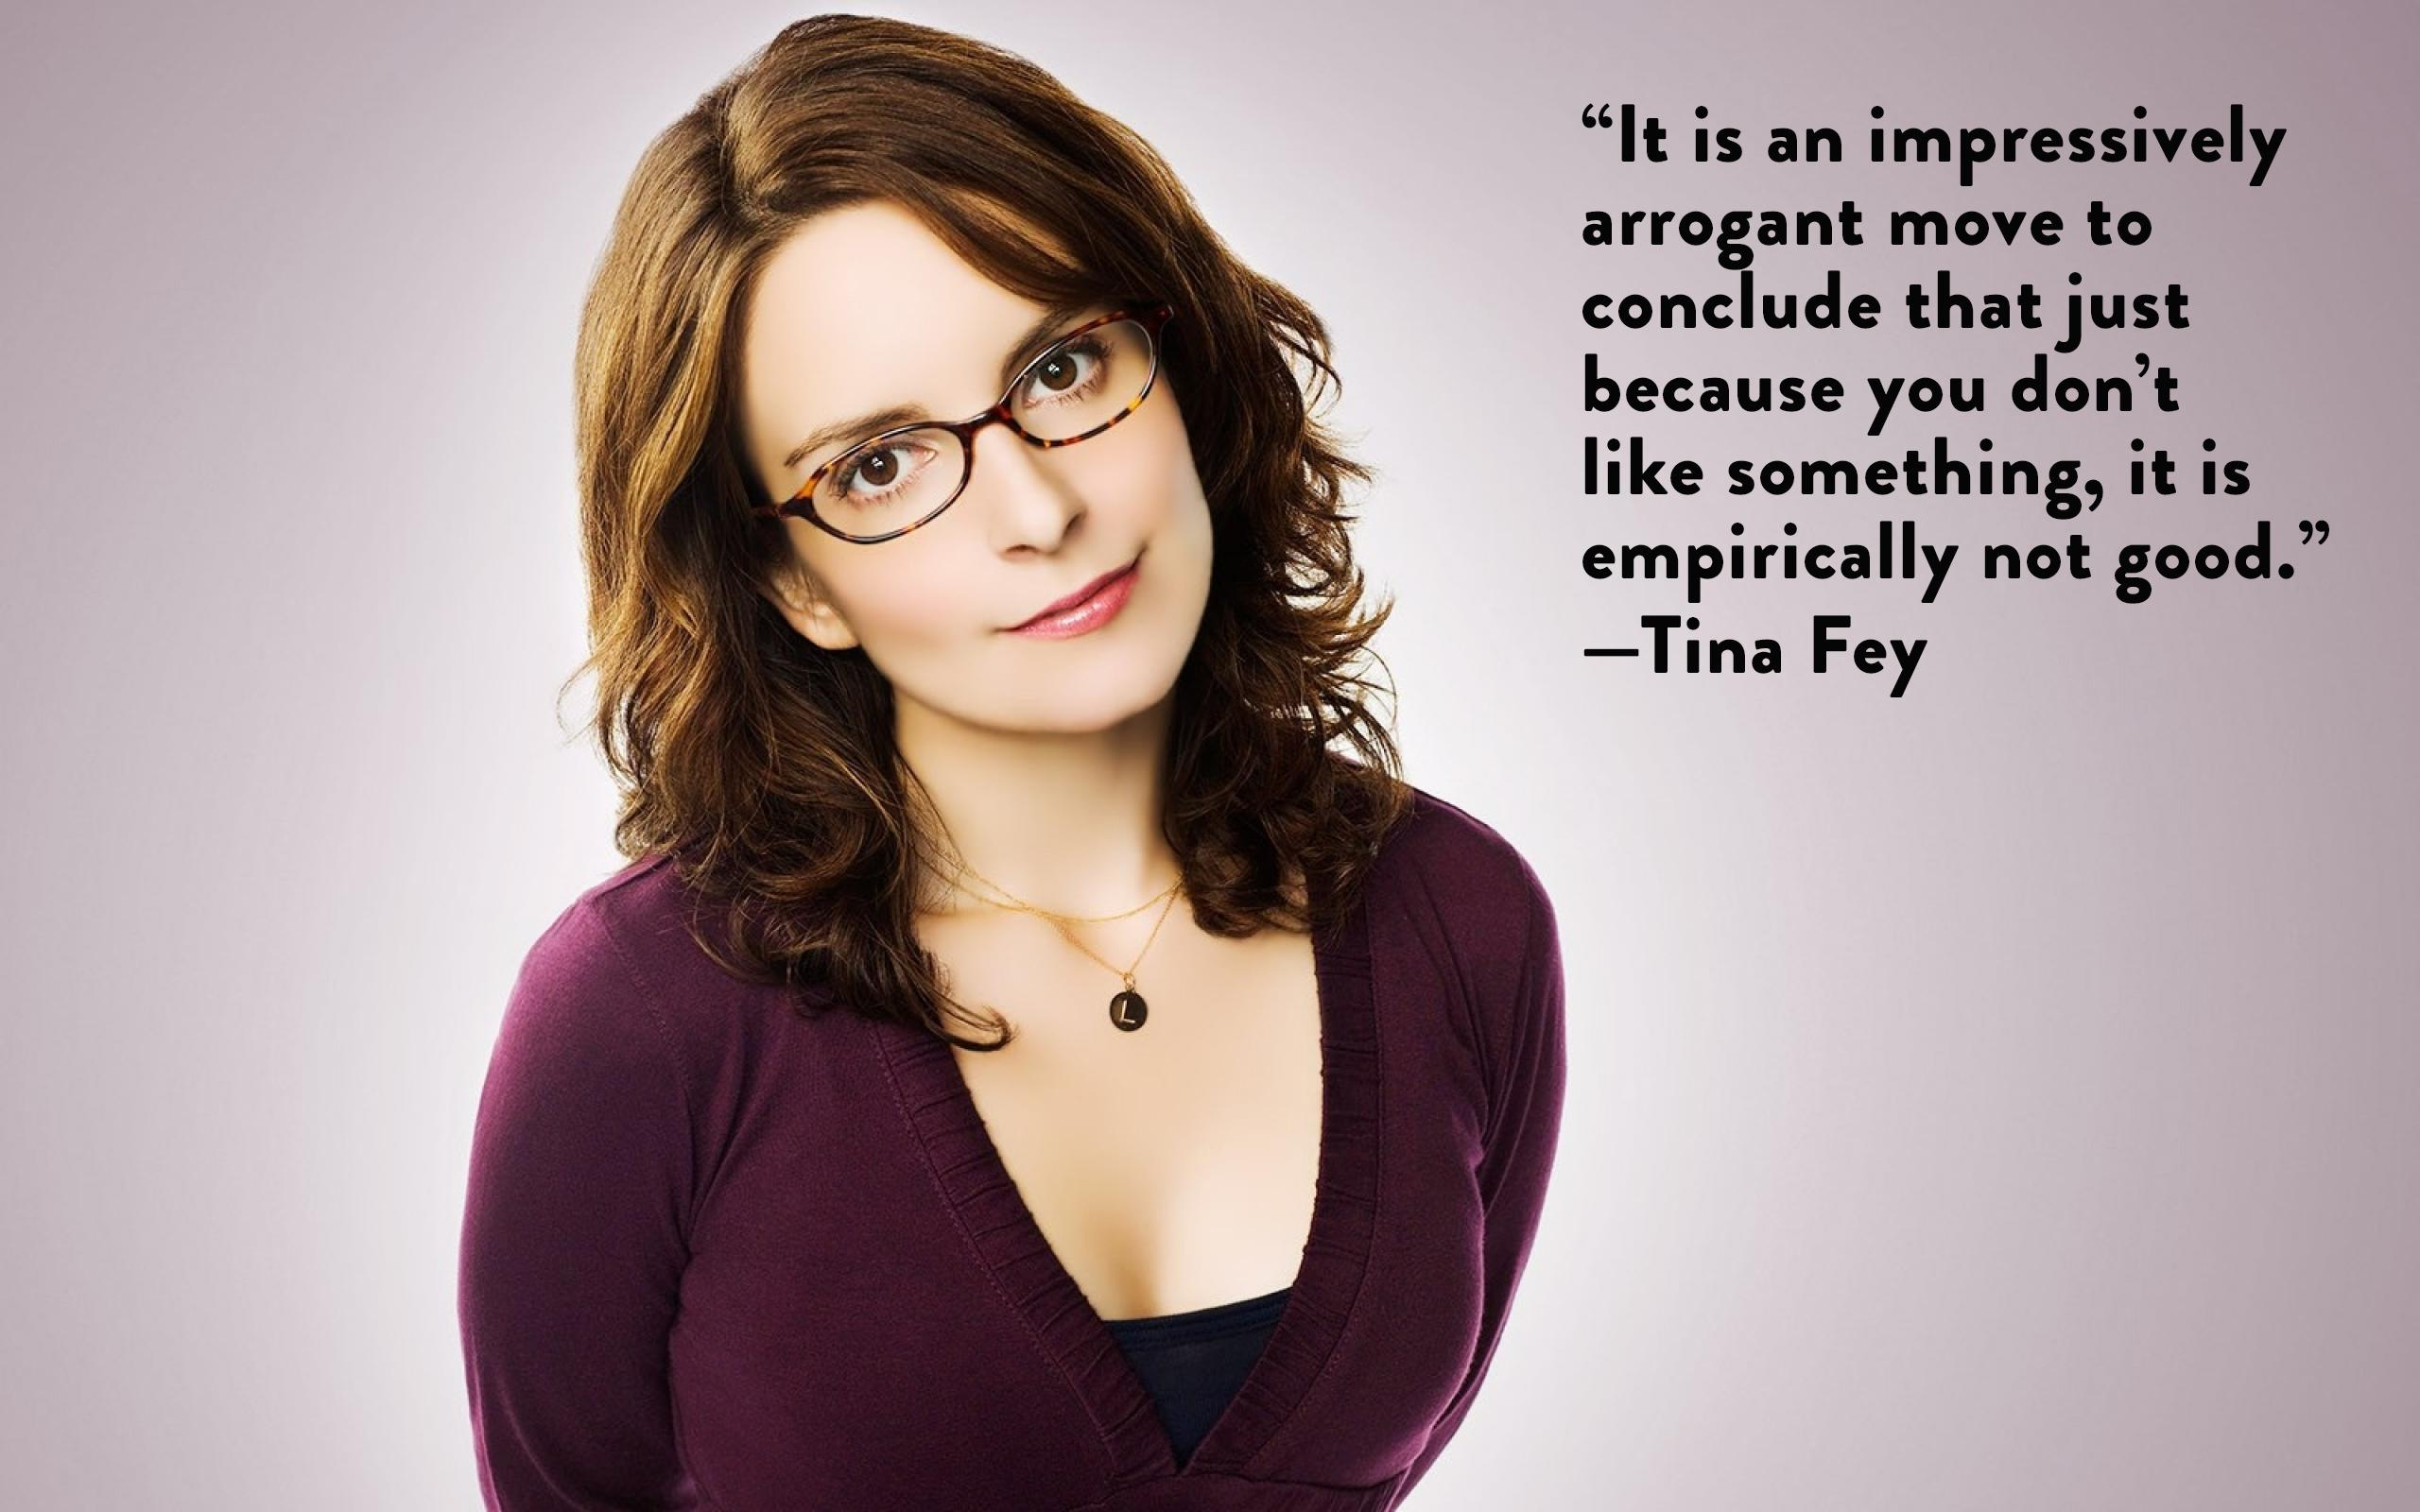 """""""It is an impressively arrogant move to conclude that just because you don't like something, it is empirically not good.""""—Tina Fey [2560×1600]"""